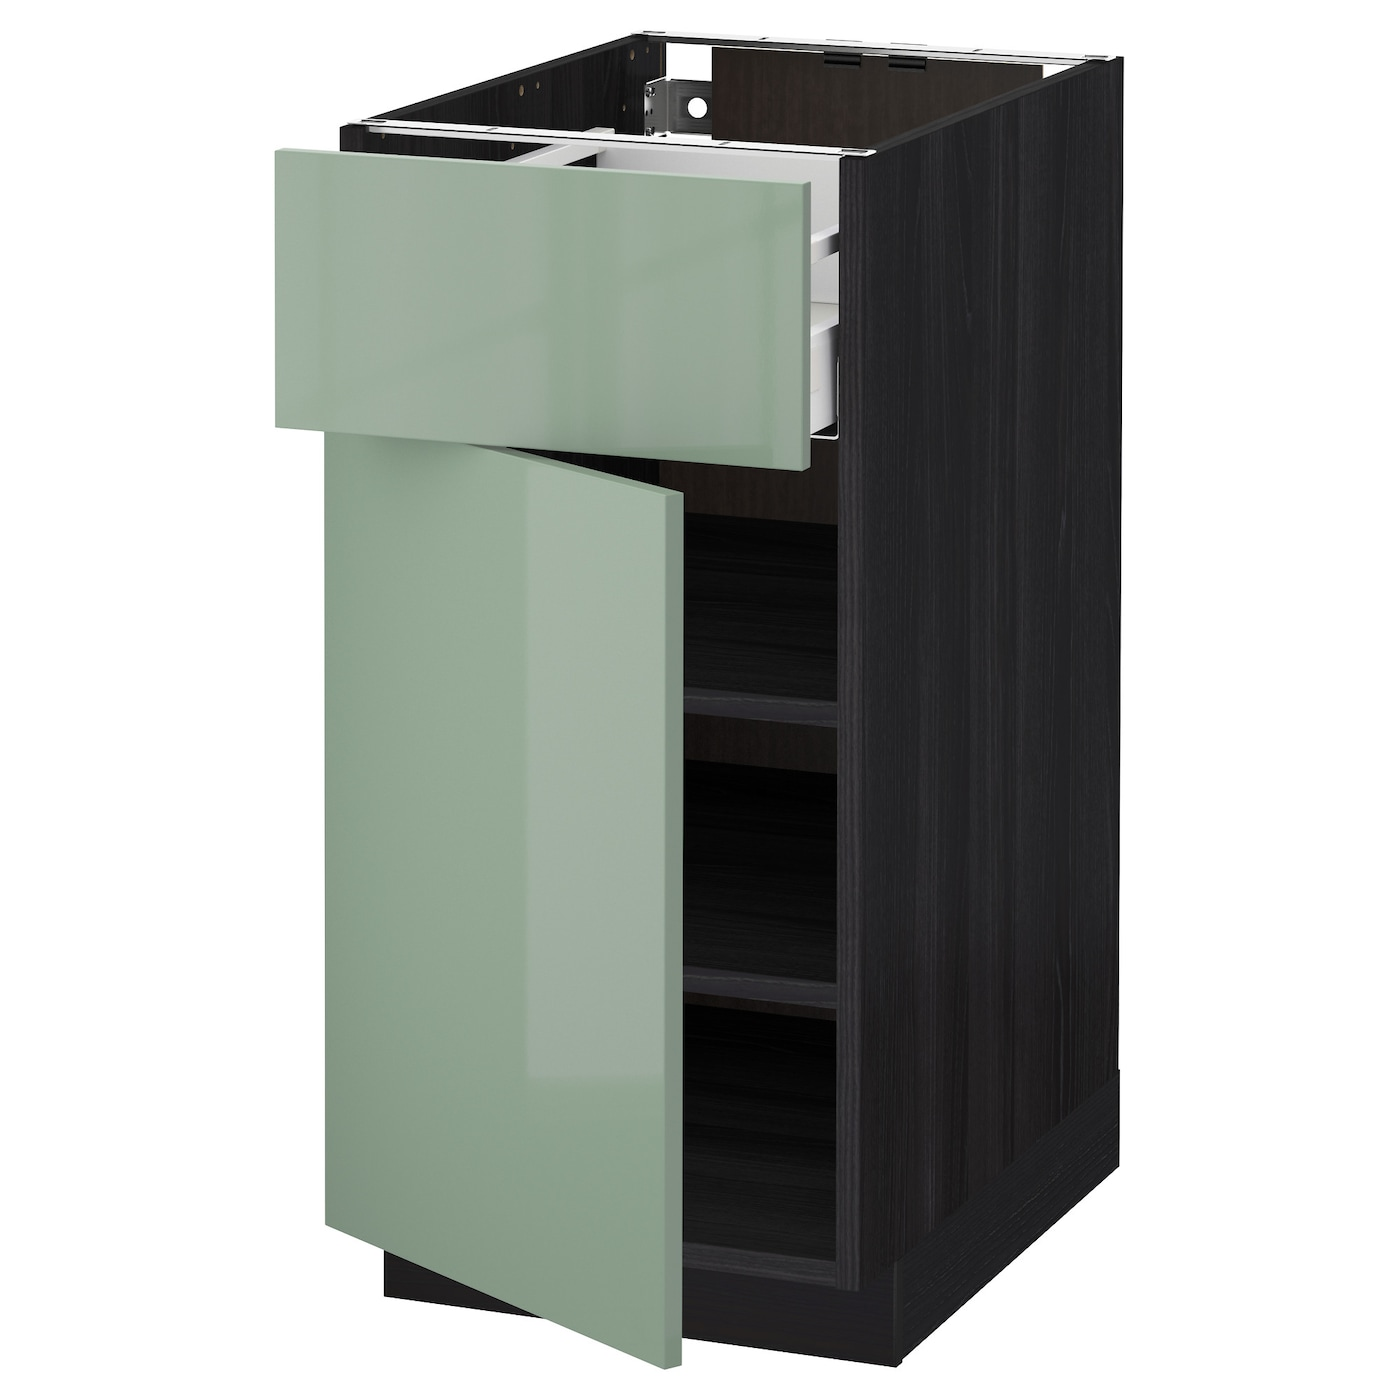 metod maximera base cabinet with drawer door black kallarp light green 40x60 cm ikea. Black Bedroom Furniture Sets. Home Design Ideas